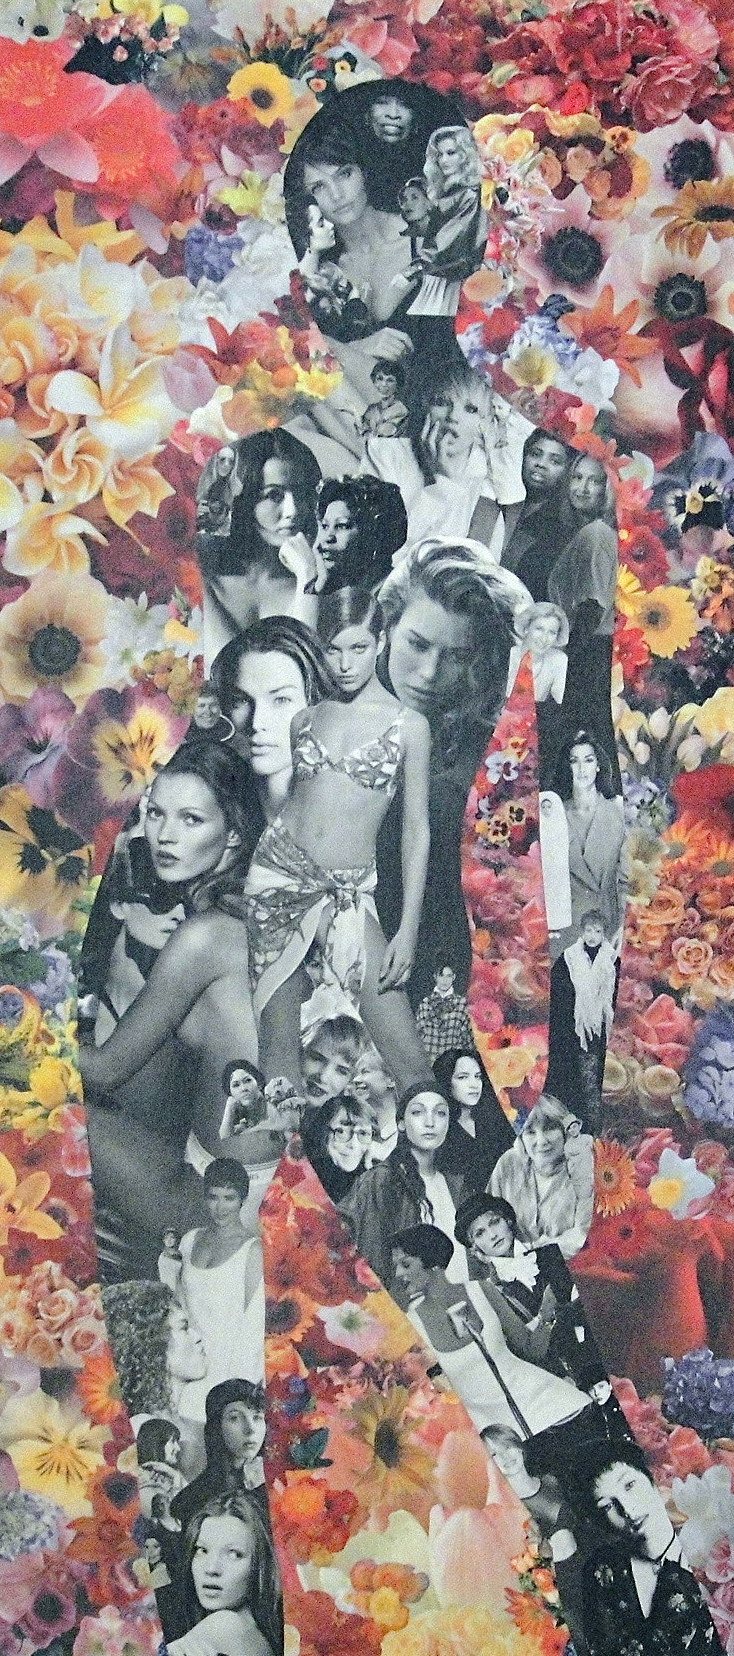 Collage of a female figure made from magazine clippings: It's Okay To Be Girlie (2006)